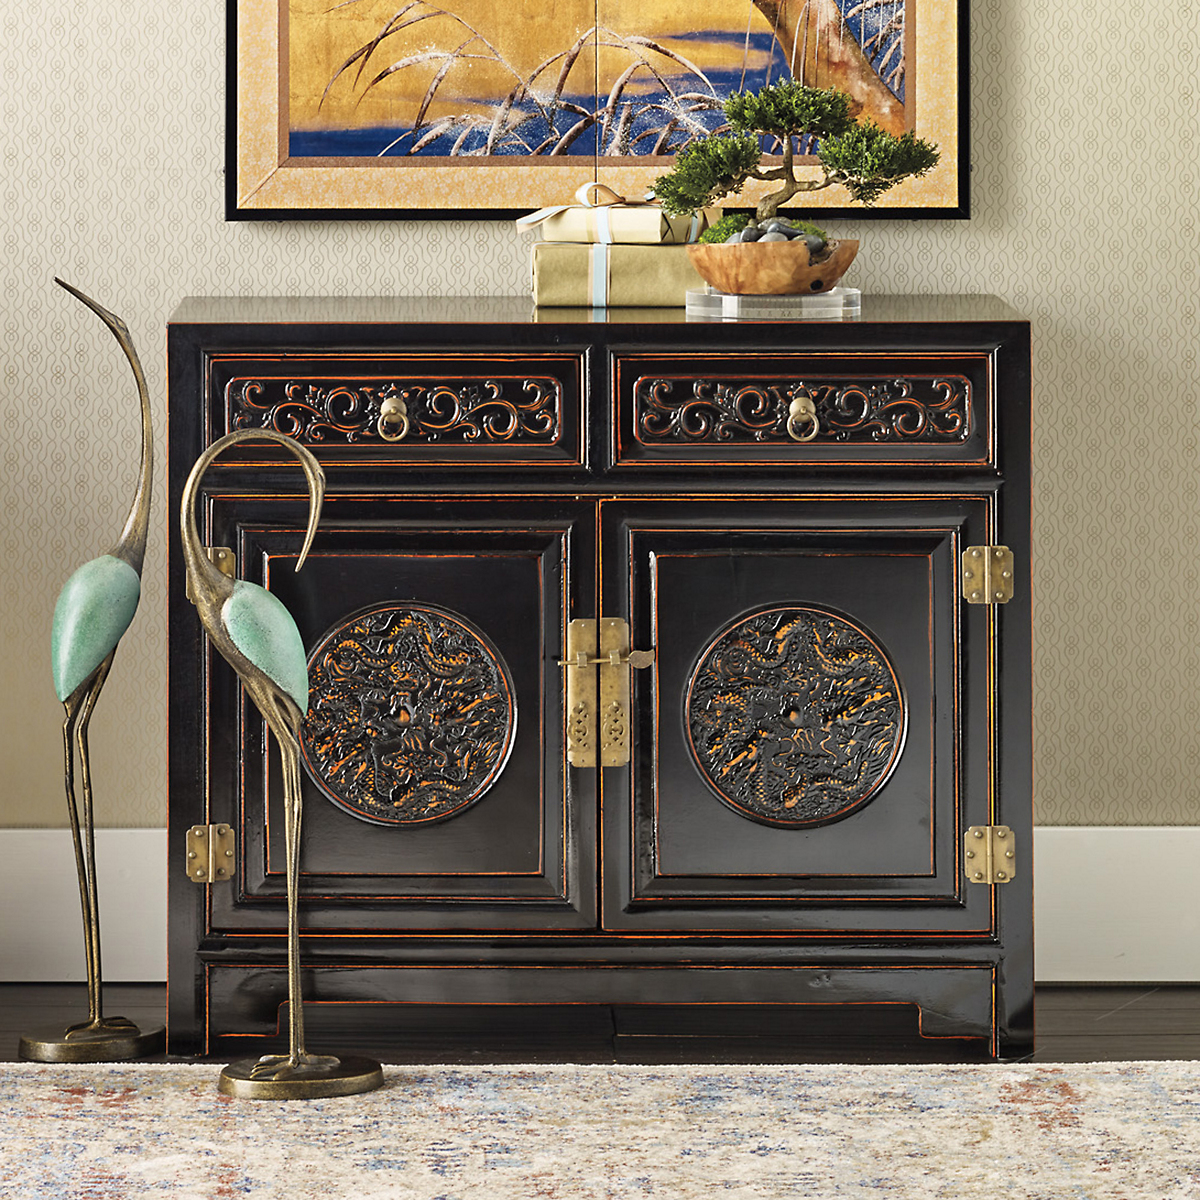 Handcarved Dragon Cabinet, Black